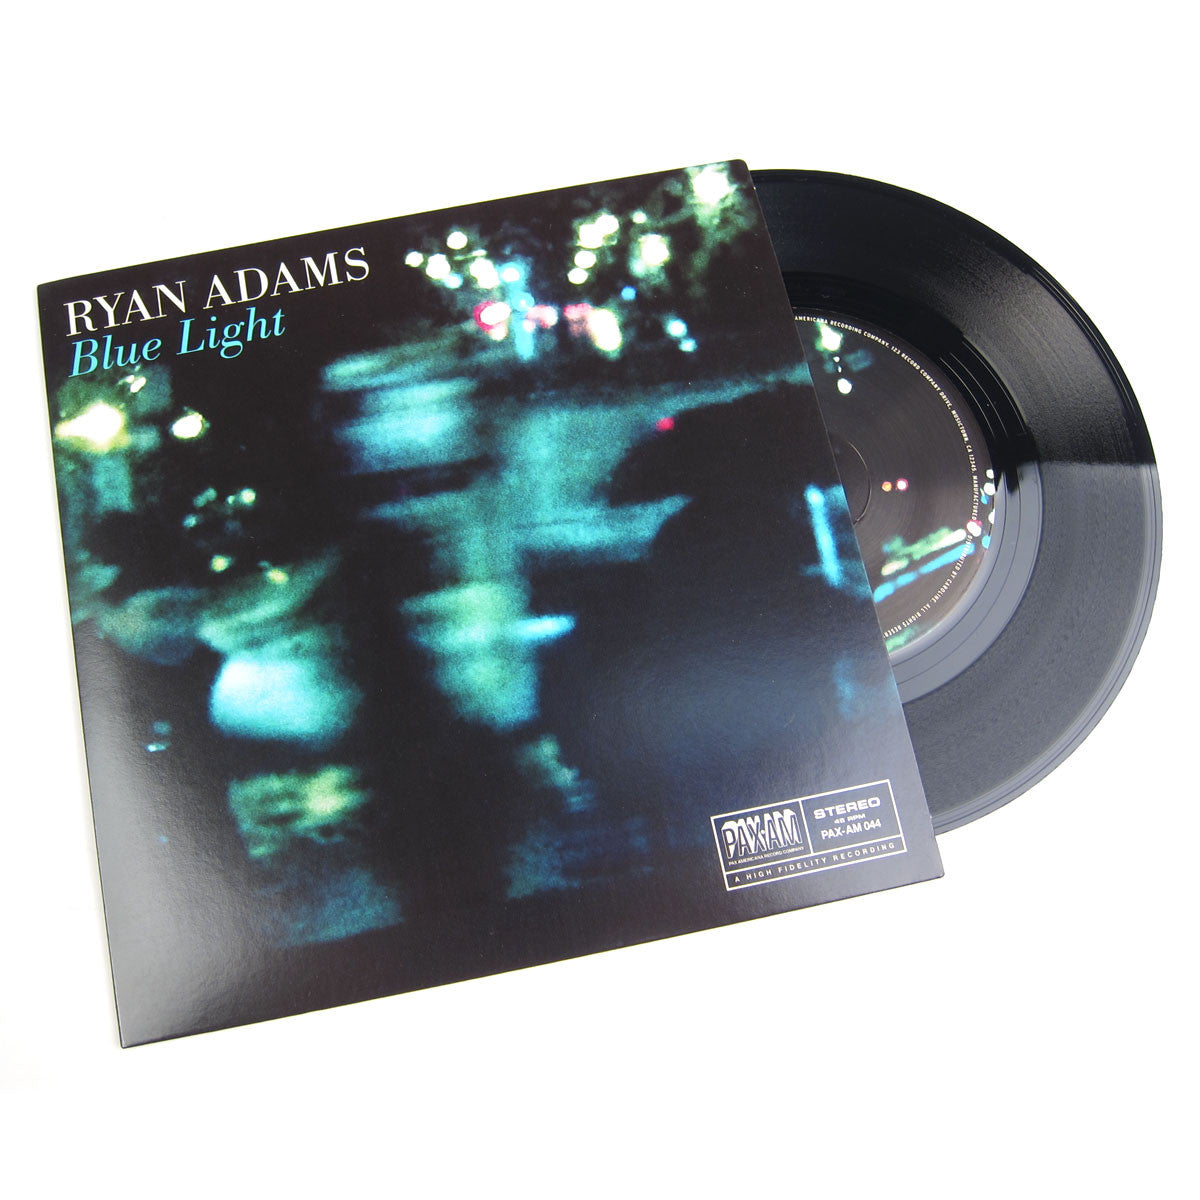 Ryan Adams: Blue Light Vinyl 7""